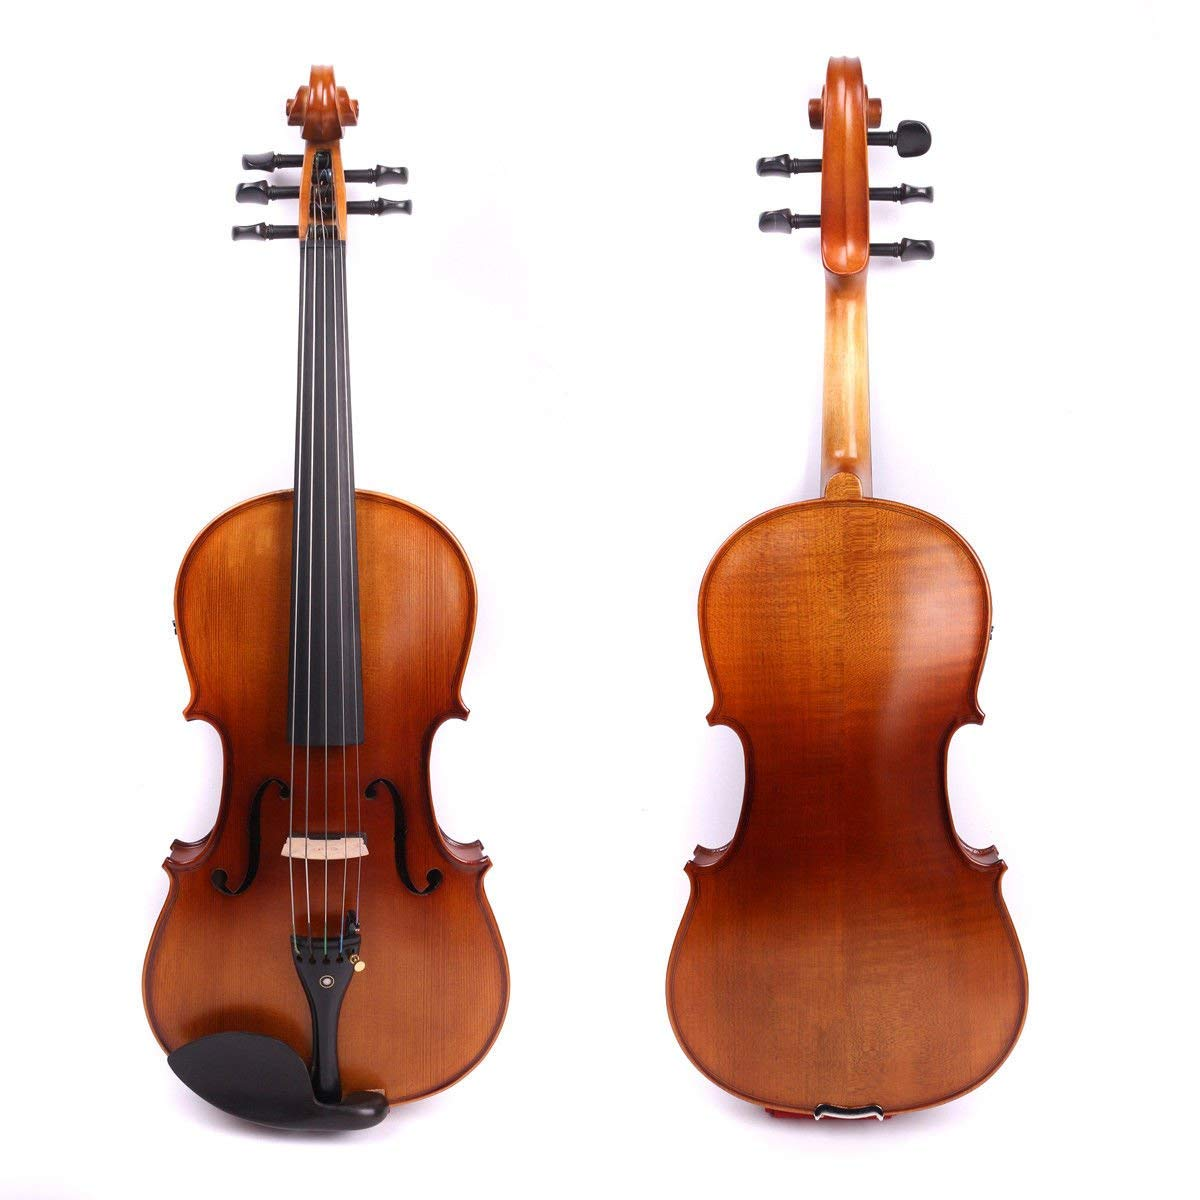 Yinfente 4/4 violin 5 string Electric violin Full size Maple Spruce wood Big jack Ebony wood Violin parts Sweet Sound by yinfente (Image #2)